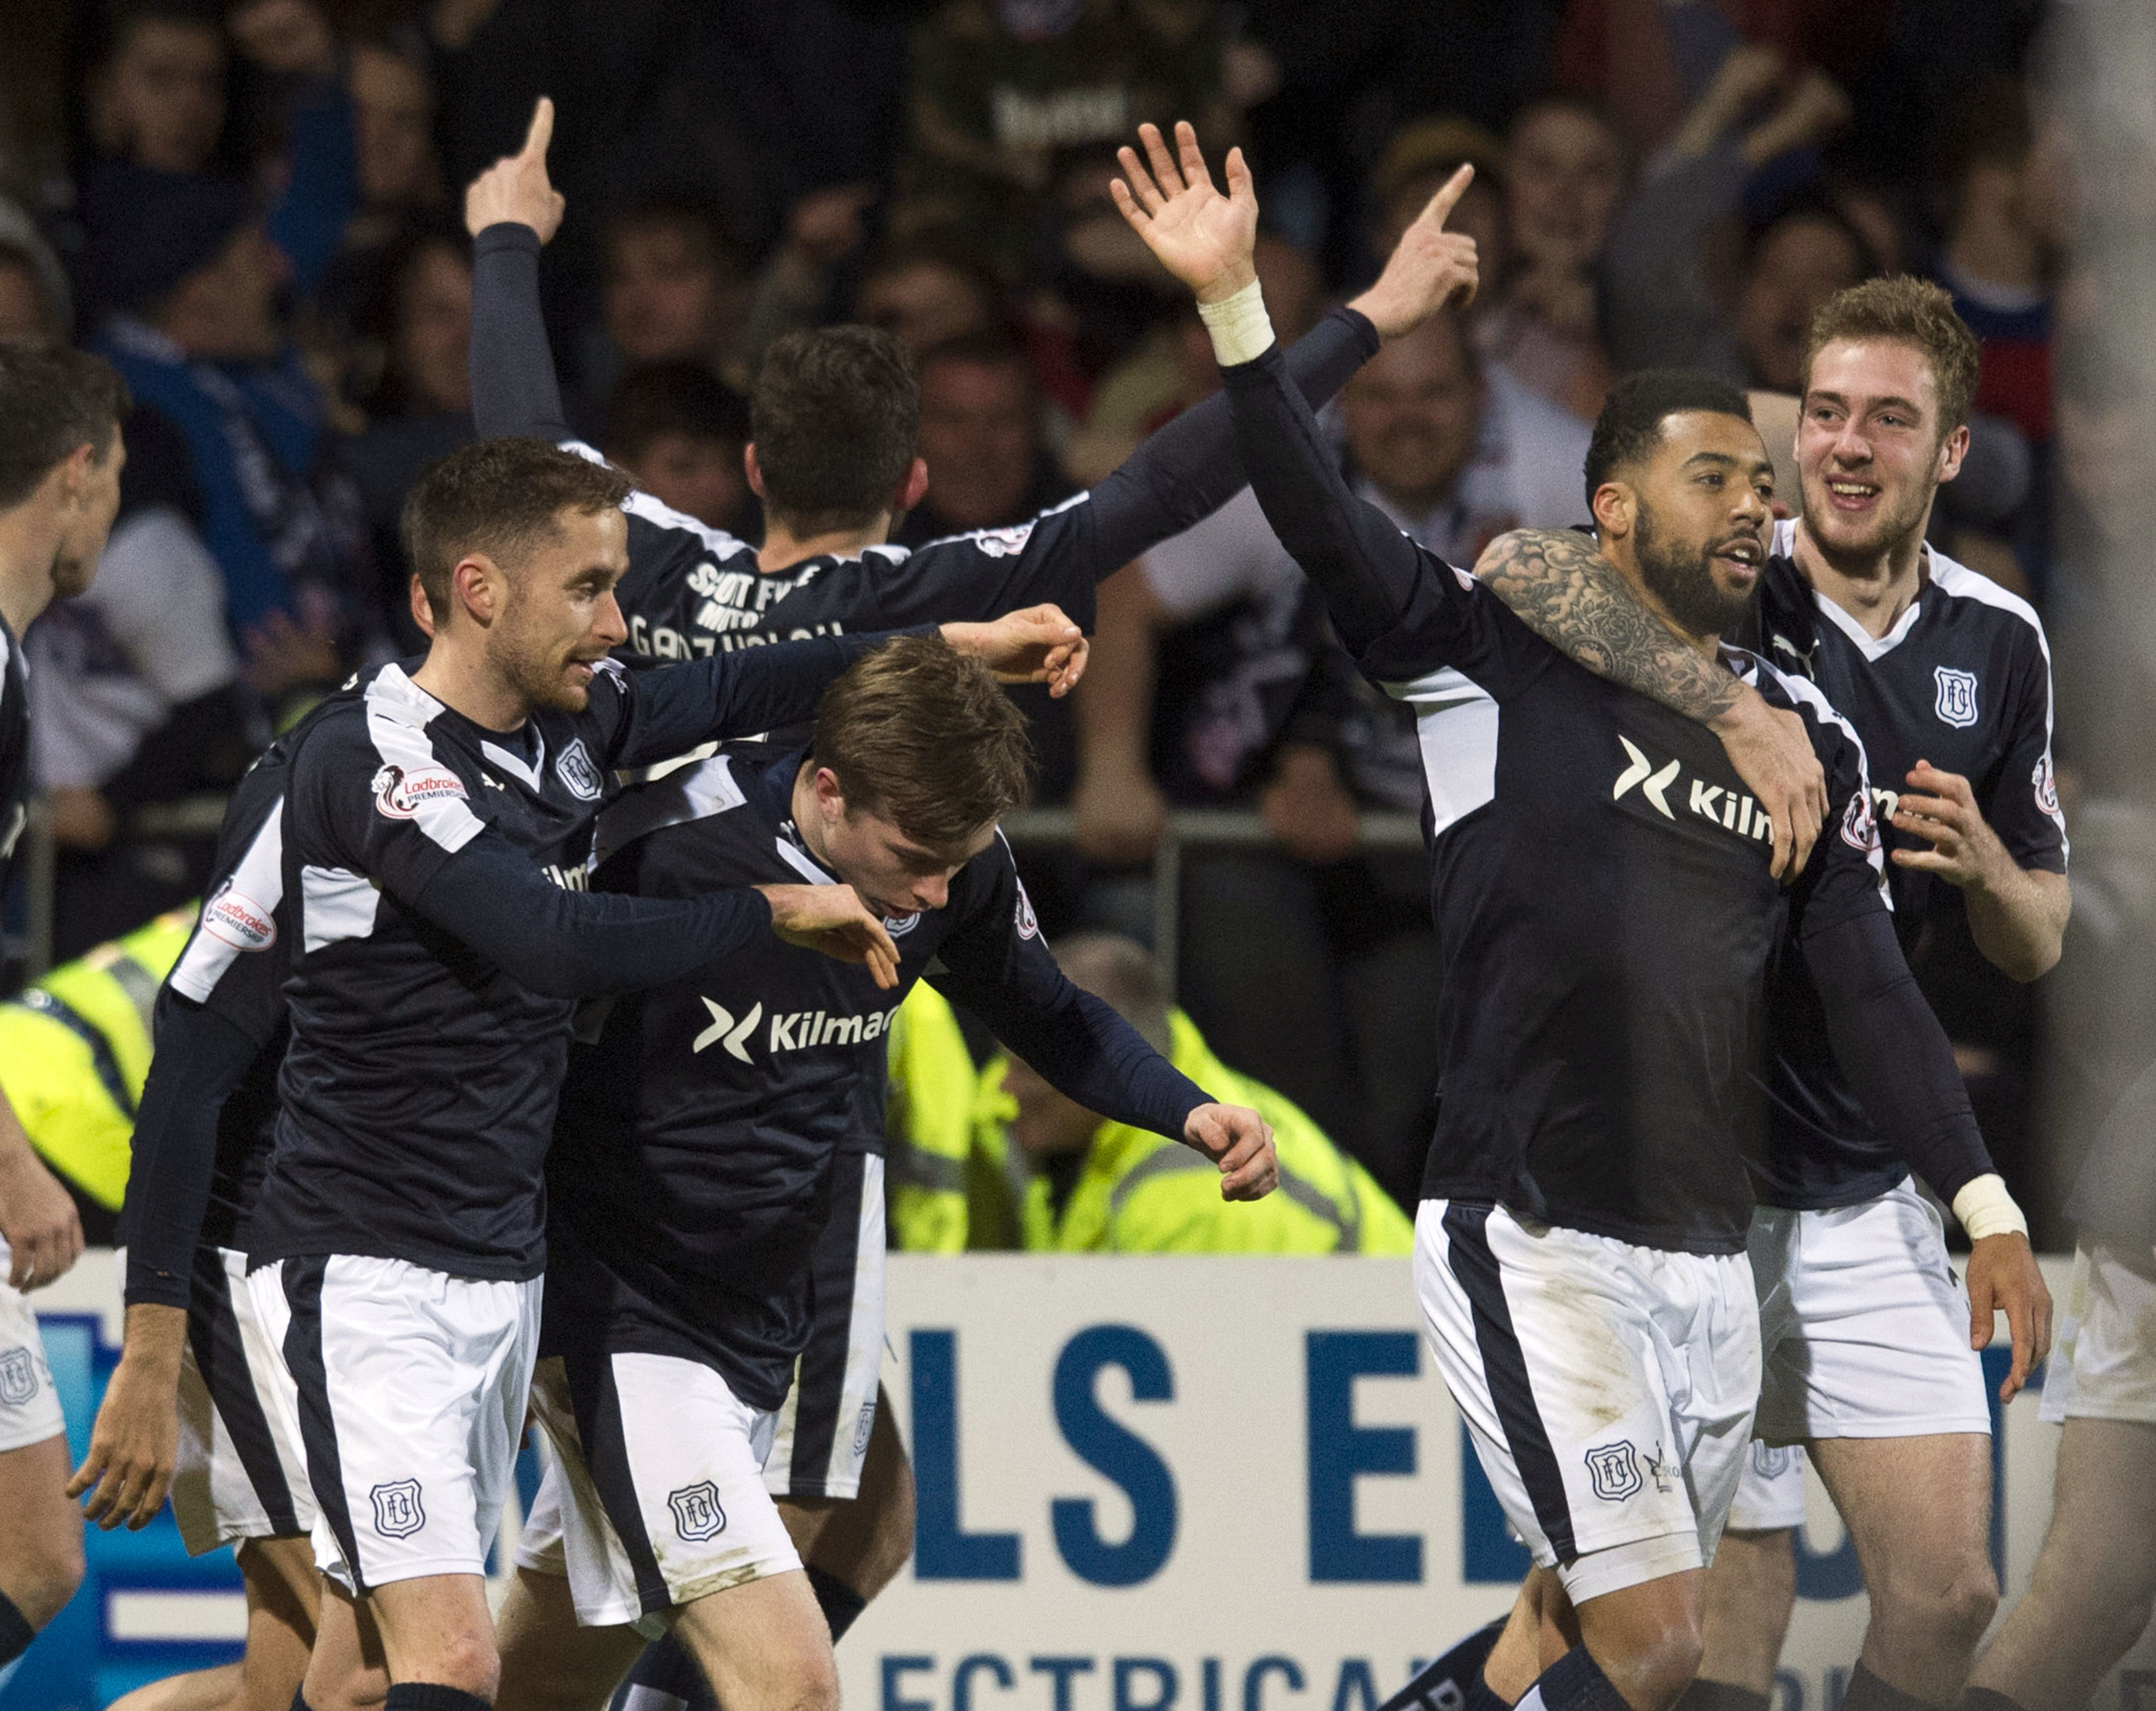 Craig Wighton is hailed after scoring the winner.